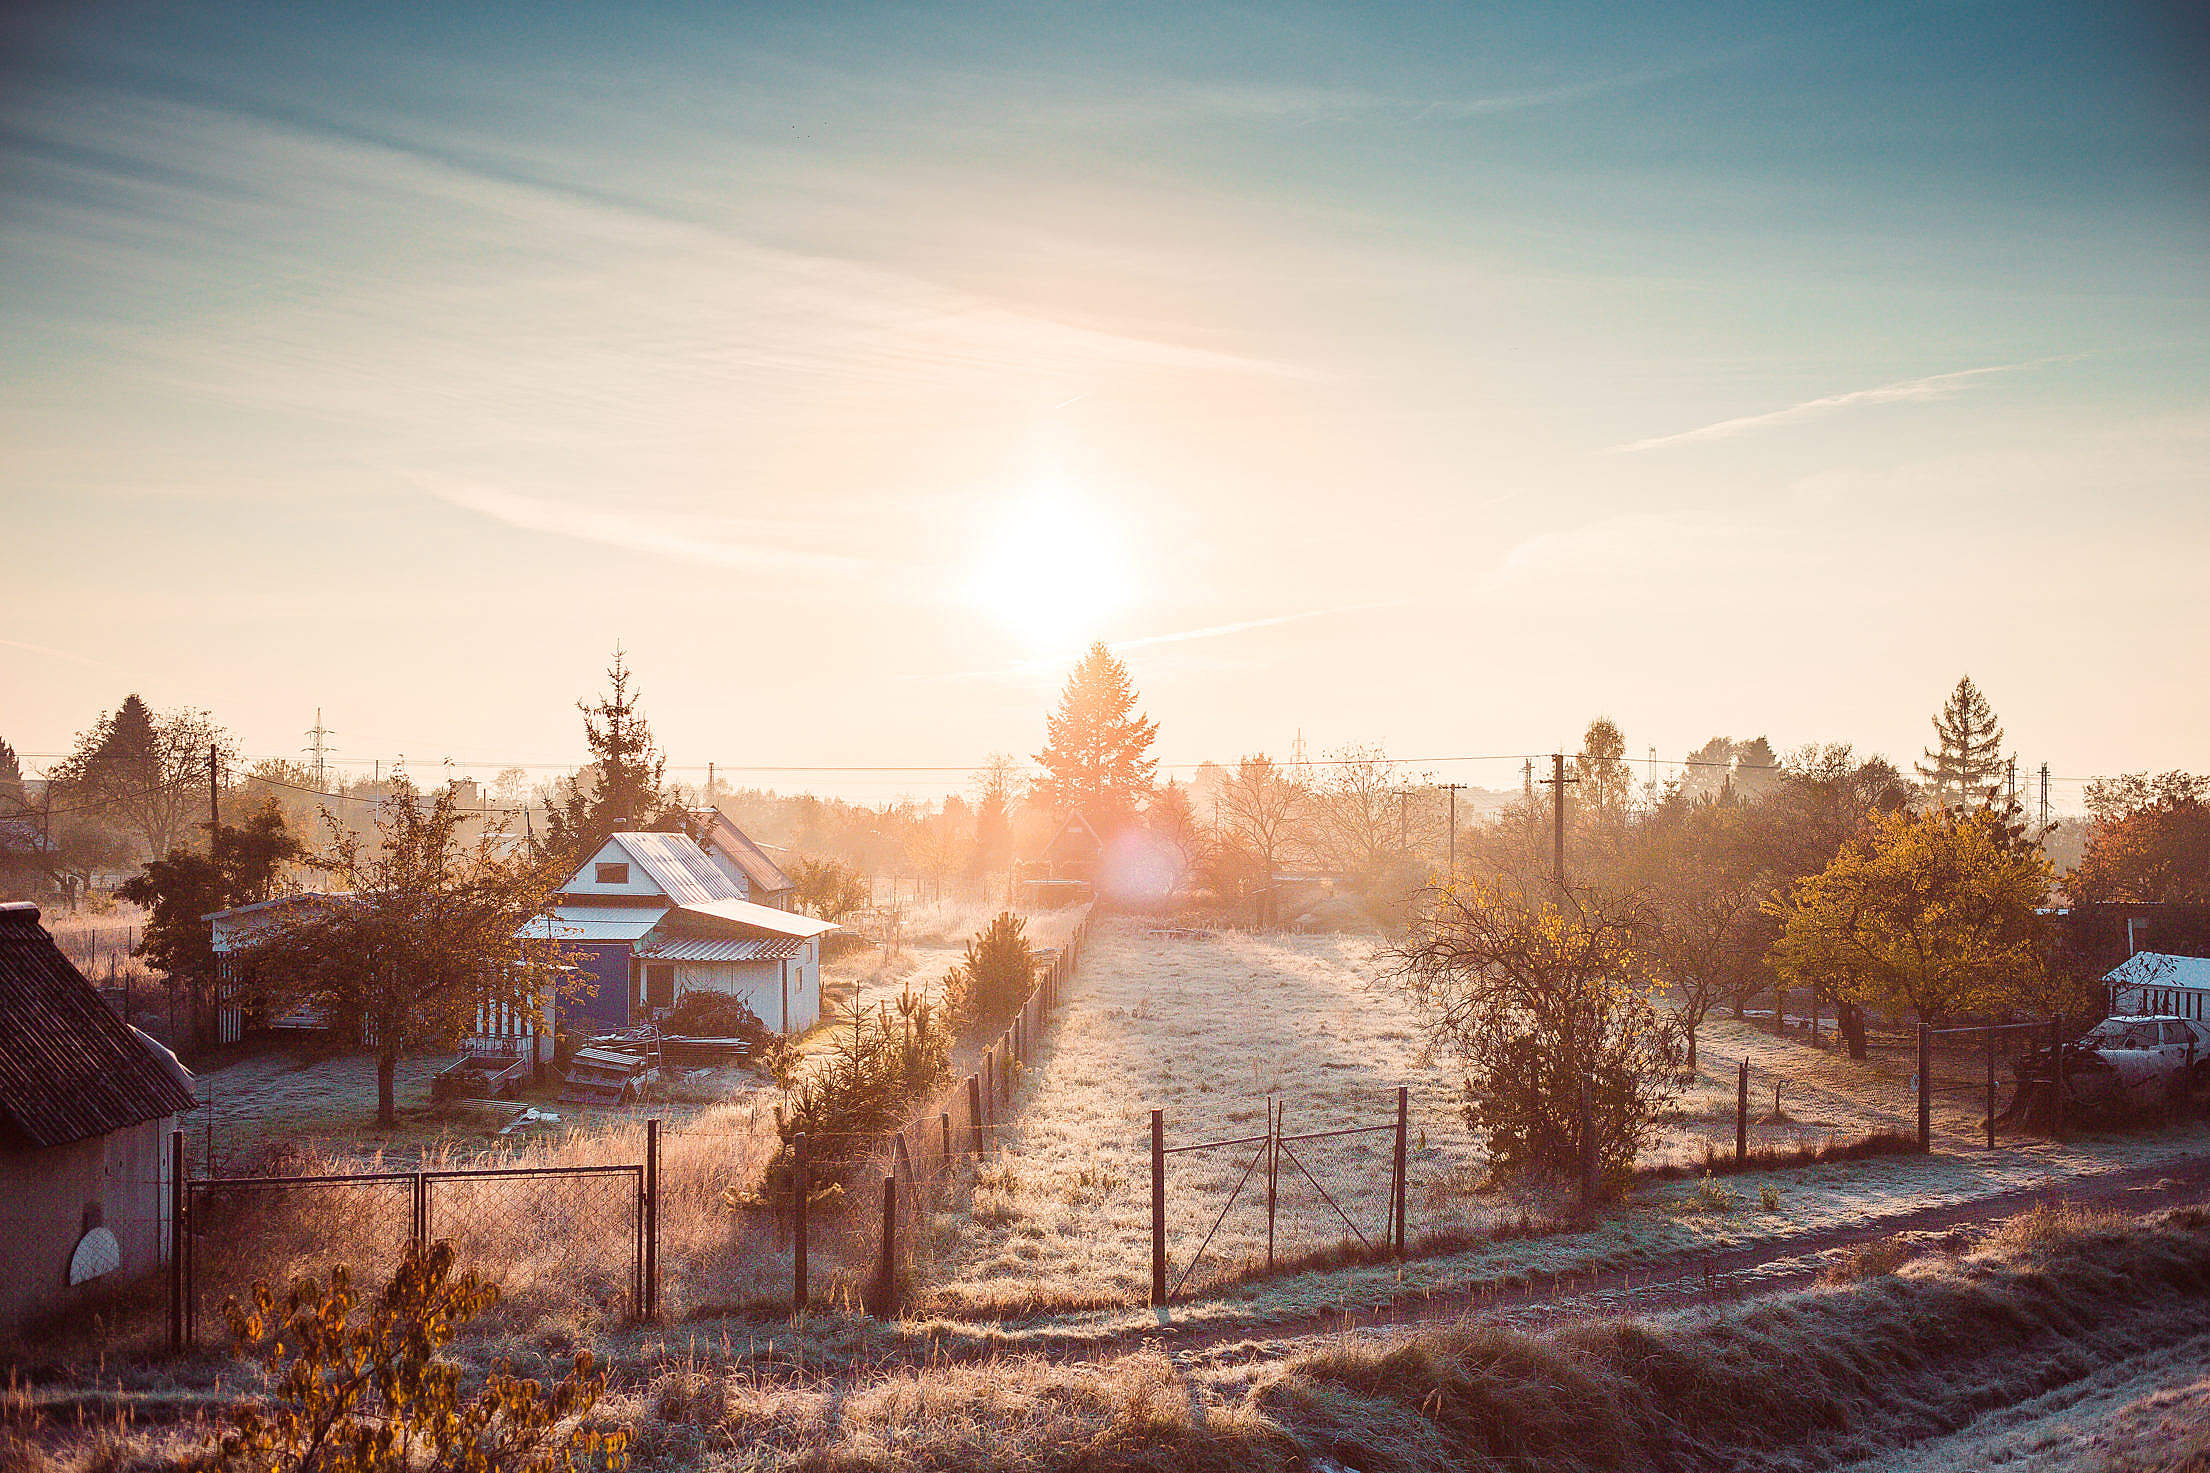 Download Cold Winter Morning over Gardening Colony Free Stock Photo